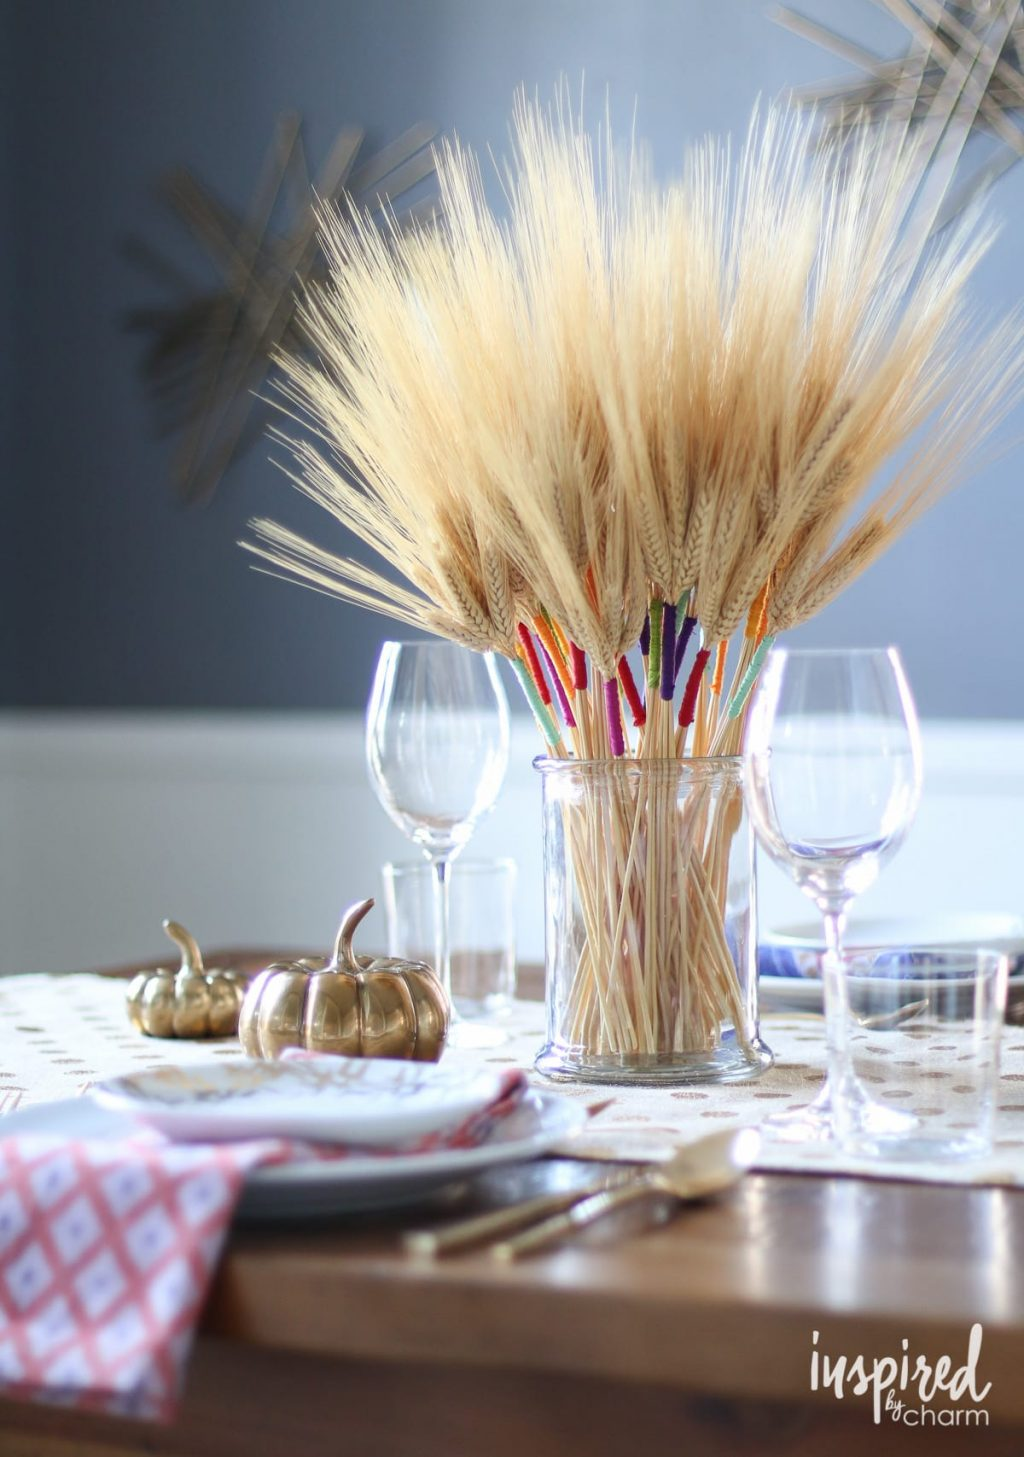 12 Fall Floral Arrangements and Centrepieces